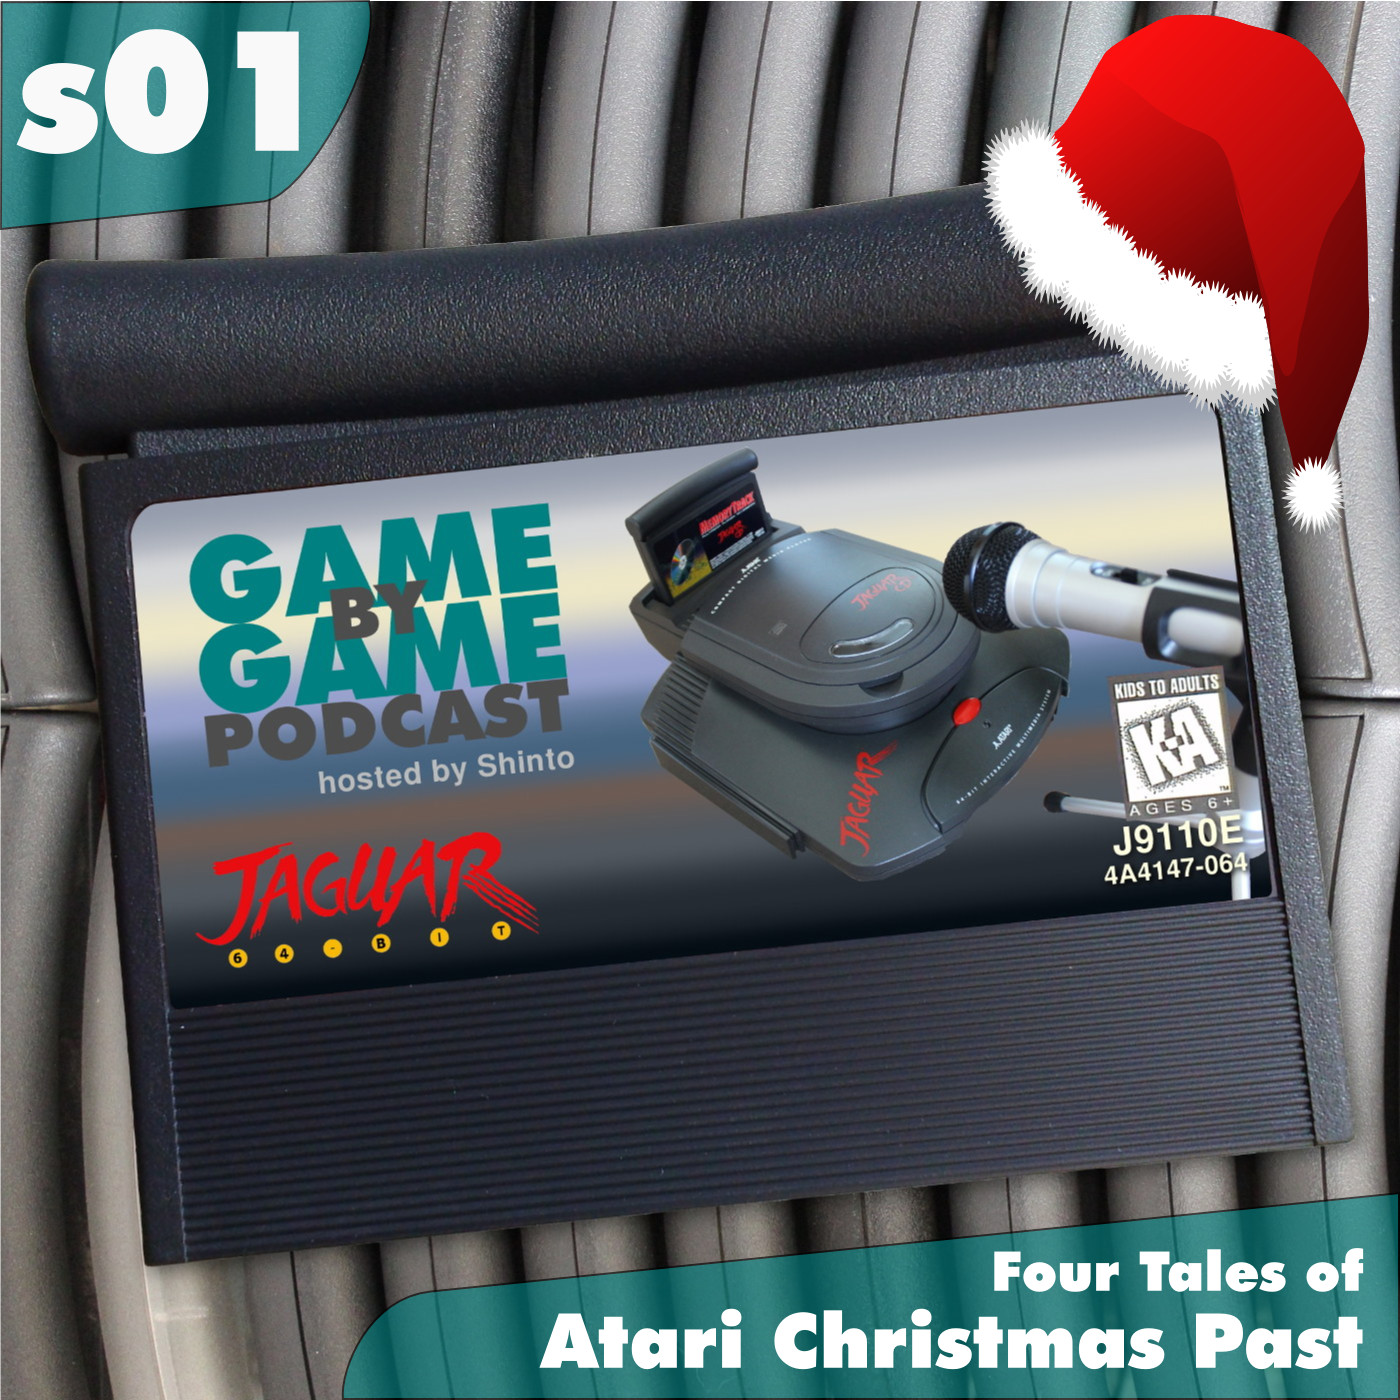 Artwork for s01 - Four Tales of Atari Christmas Past